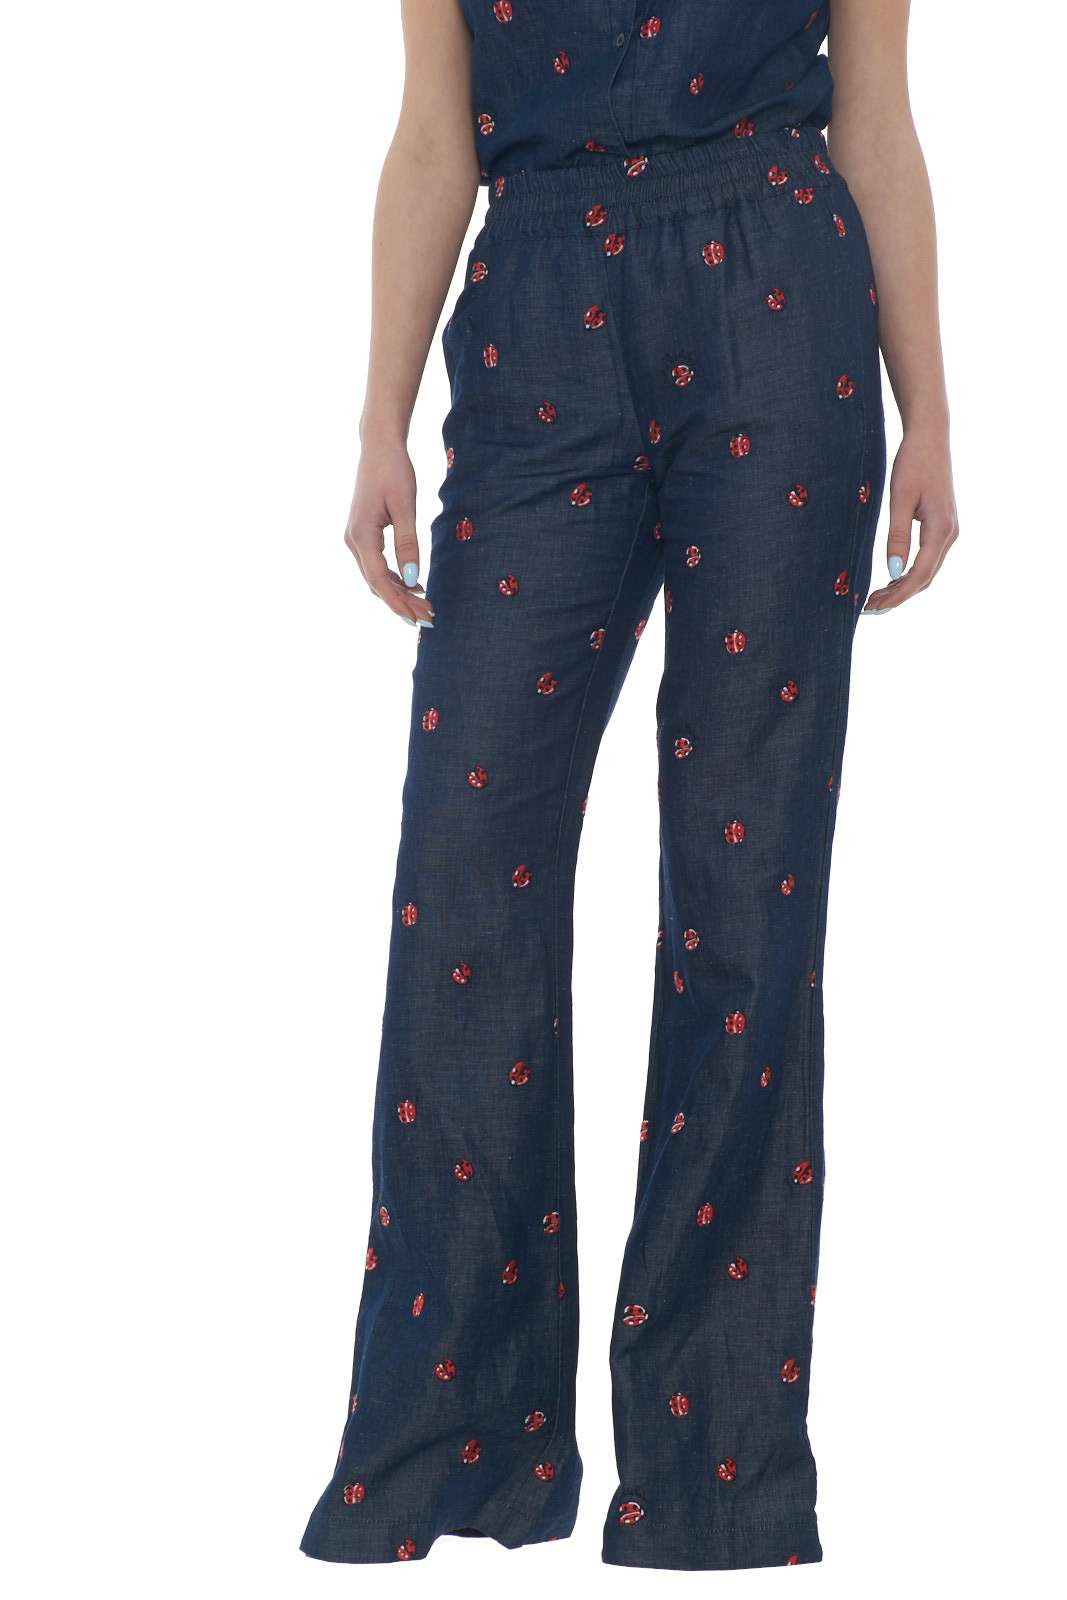 /media/catalog/product/a/i/PE-outlet_parmax-pantaloni-donna-Love-Moschino-W%20P%20935%2000%20T%209738-A.jpg